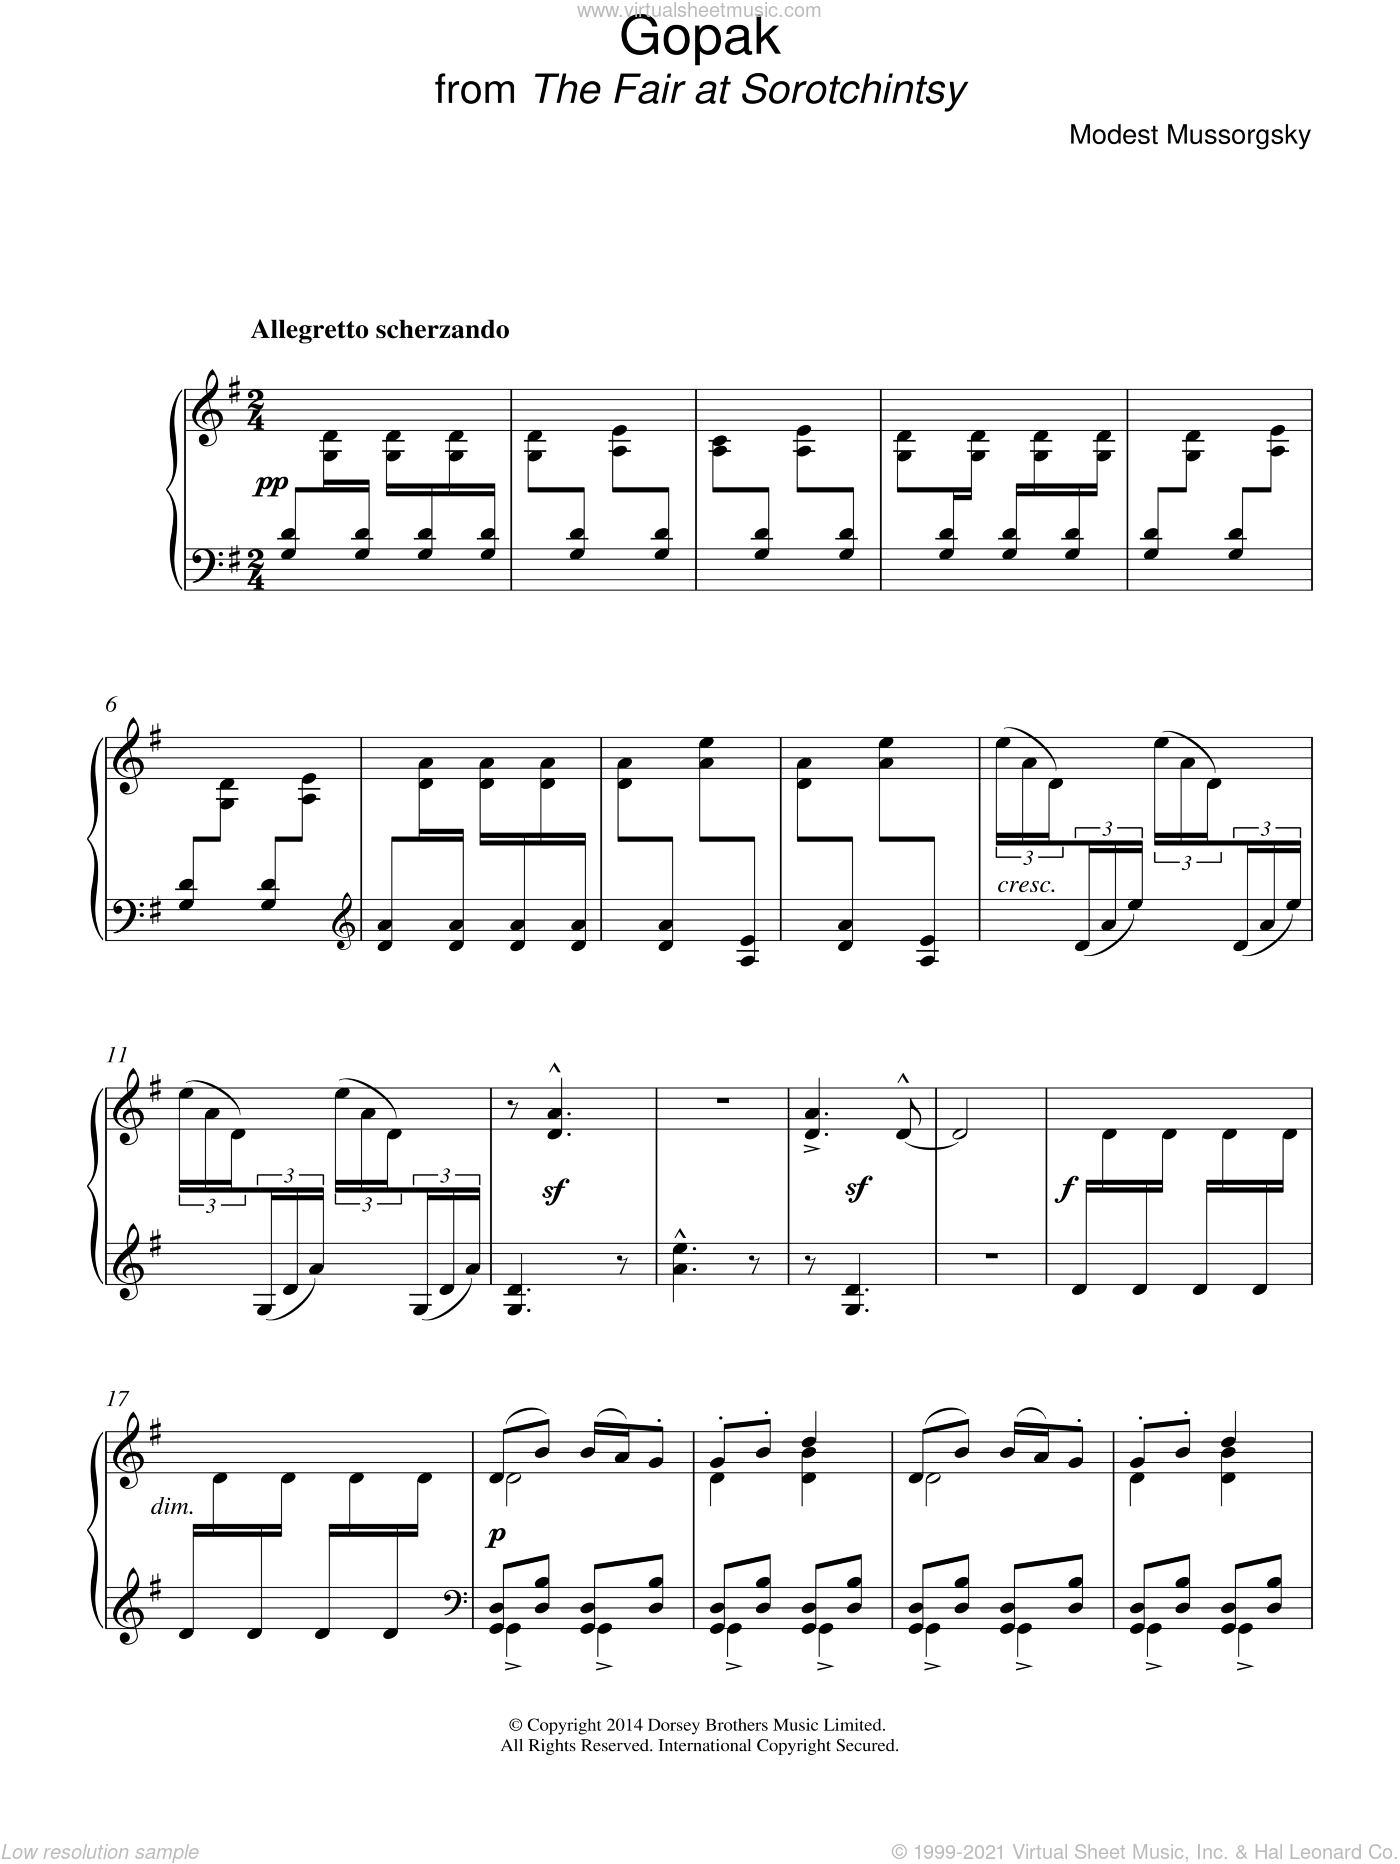 Gopak (from Sorotchinsky Fair) sheet music for piano solo by Modest Petrovic Mussorgsky